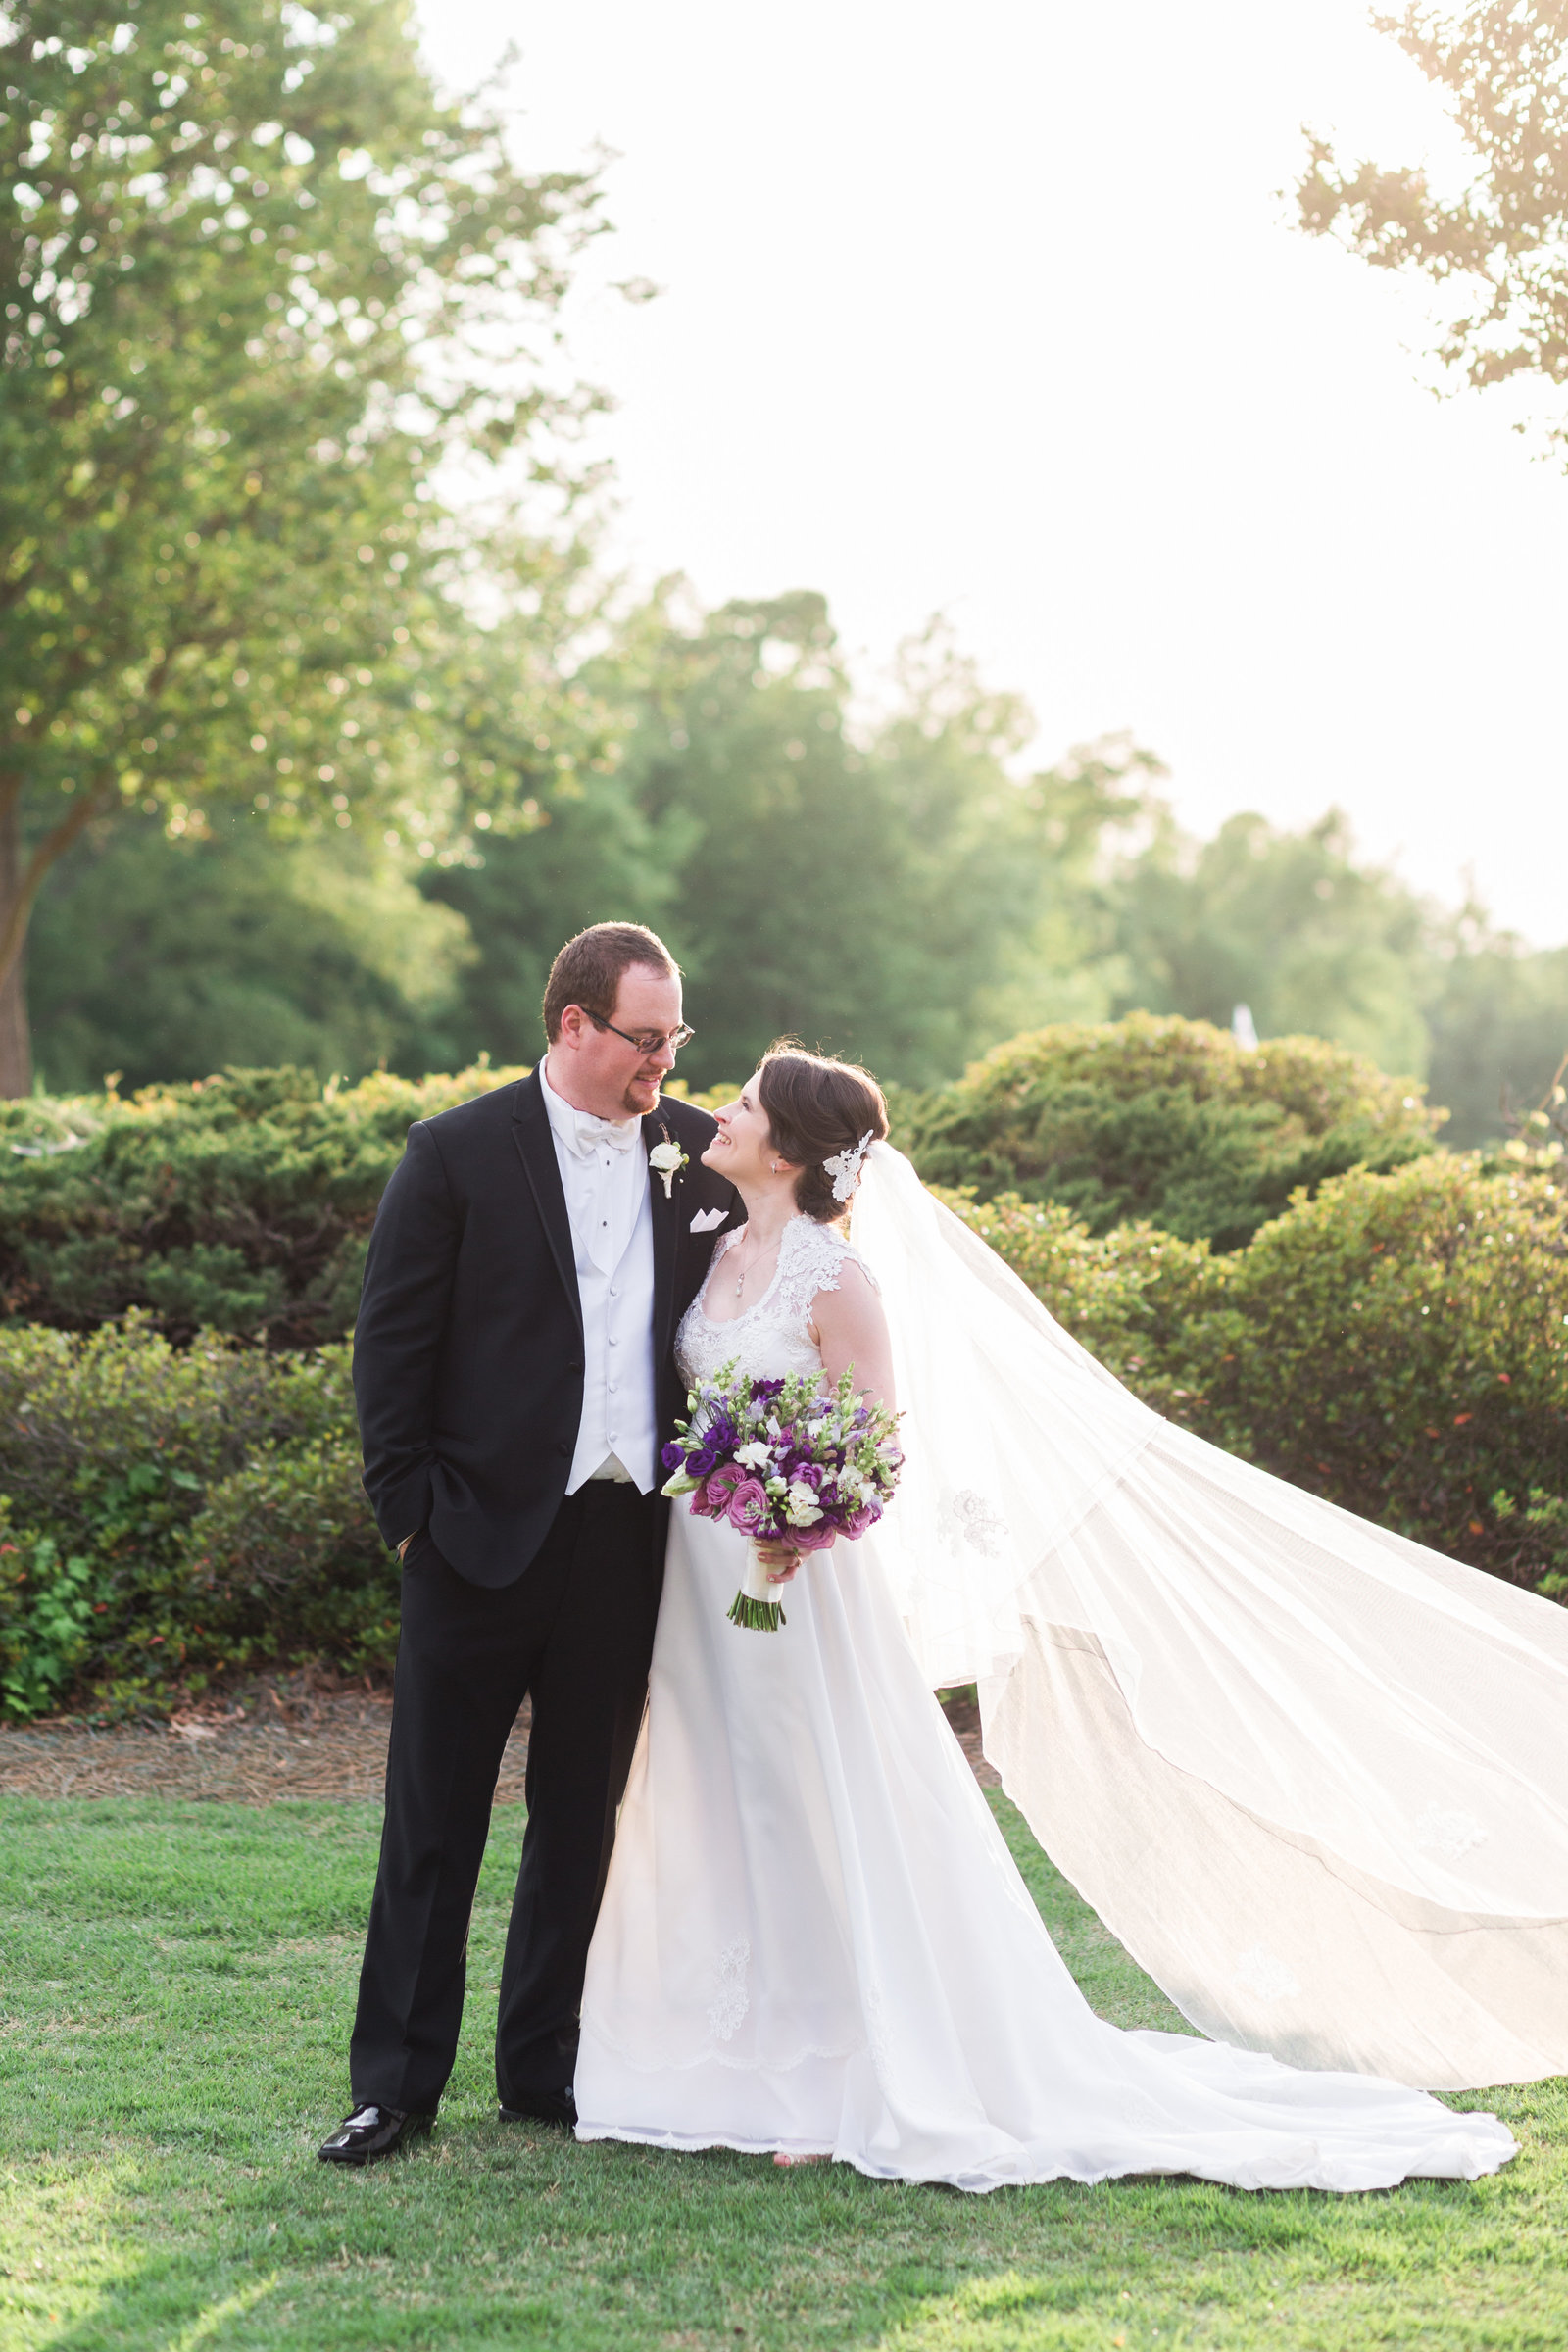 Chris and Abby Married-Samantha Laffoon Photography-174